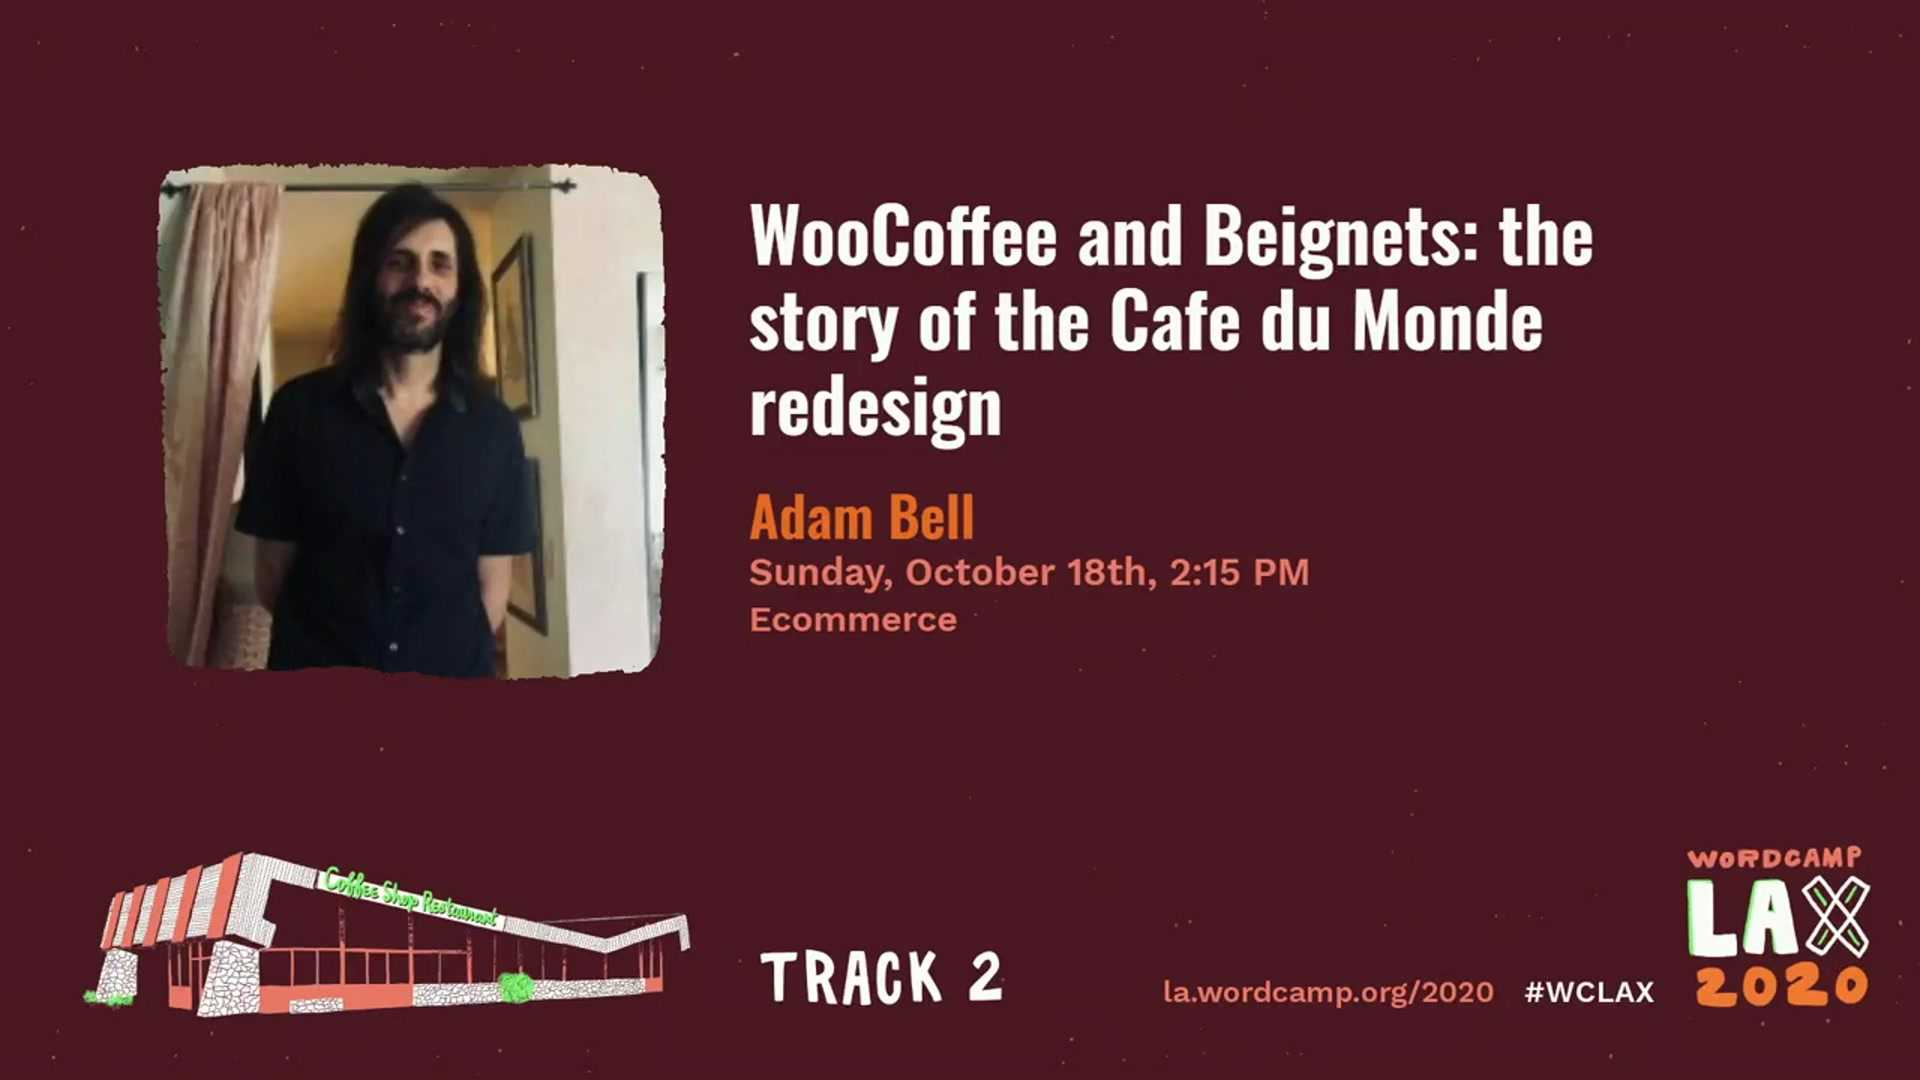 Adam Bell: WooCoffee and Beignets: the story of the Cafe du Monde redesign